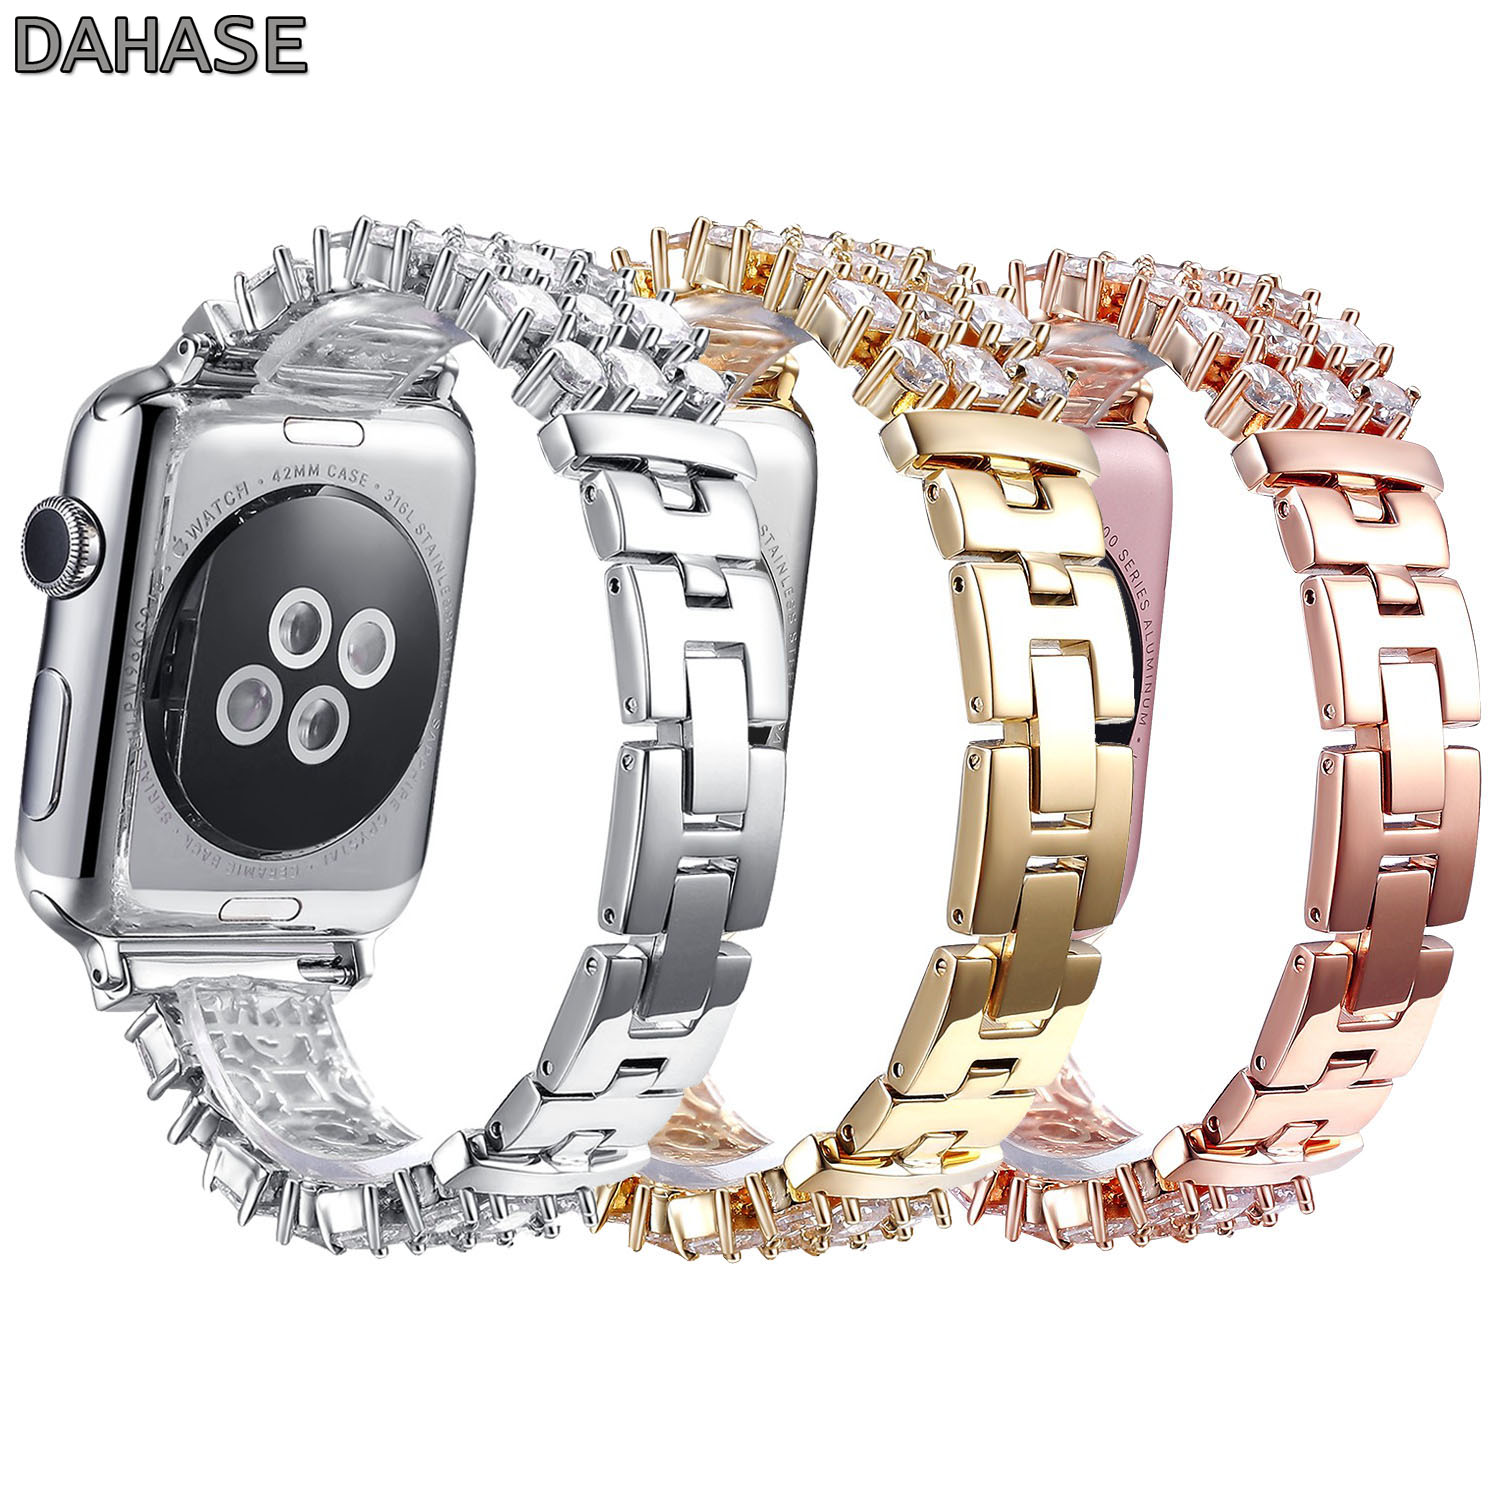 DAHASE Bling Rhinestone Link Bracelet for Apple Watch Band Stainless Steel Strap for iWatch 38mm 42mm Series 1/2/3 Belt top quality full stainless steel watch band for apple watch strap band link bracelet band for iwatch 38mm 42mm 2016 new sale